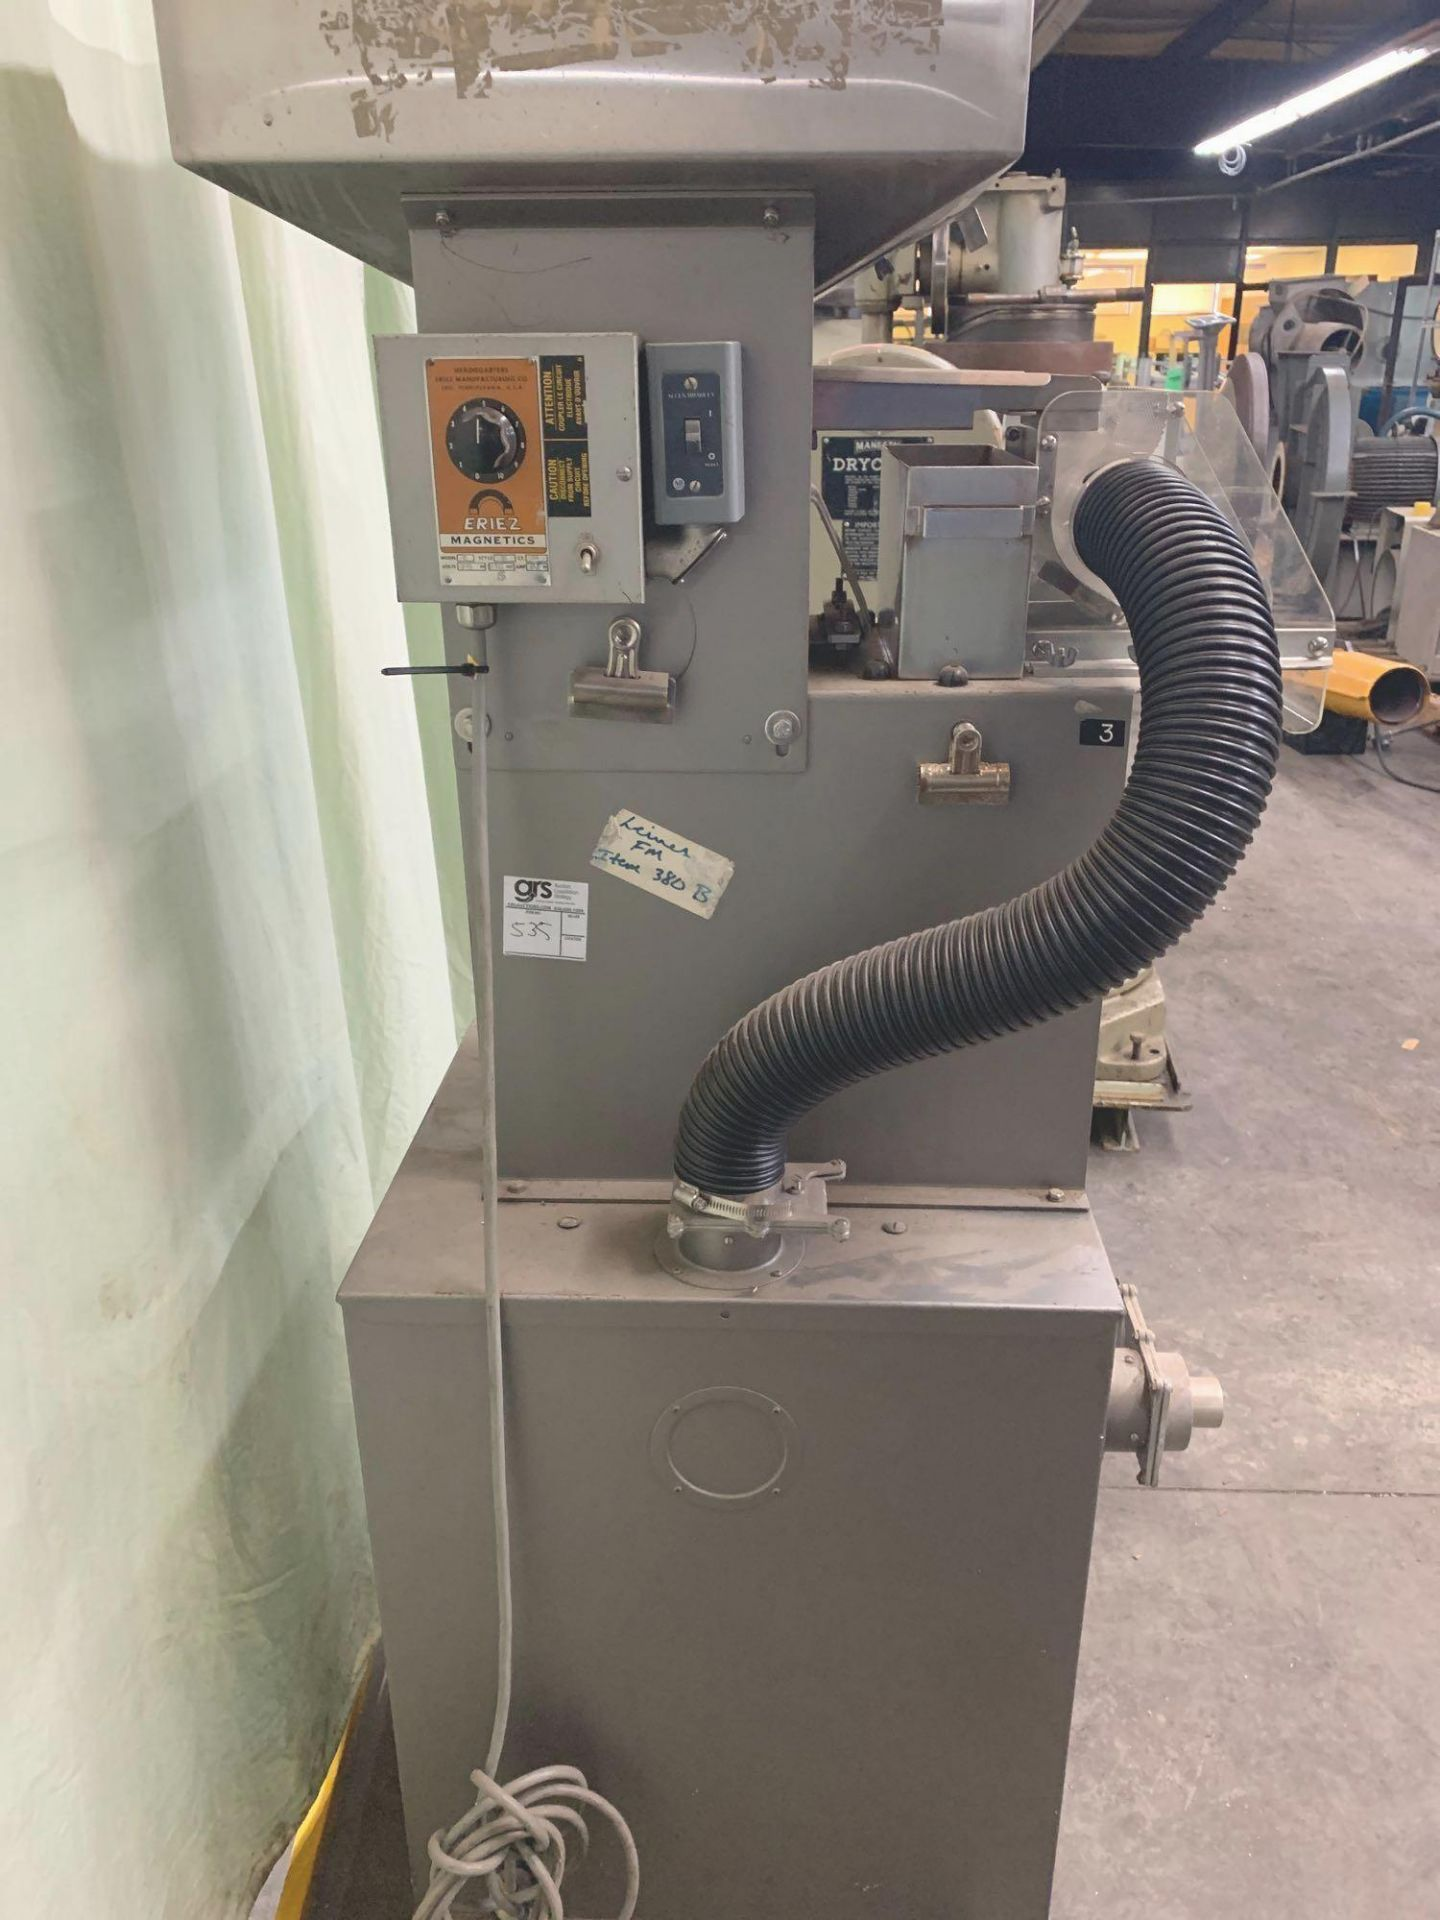 Lakso Vibratory Tablet Feeder w/ Donaldson Dust Collector - Image 2 of 13